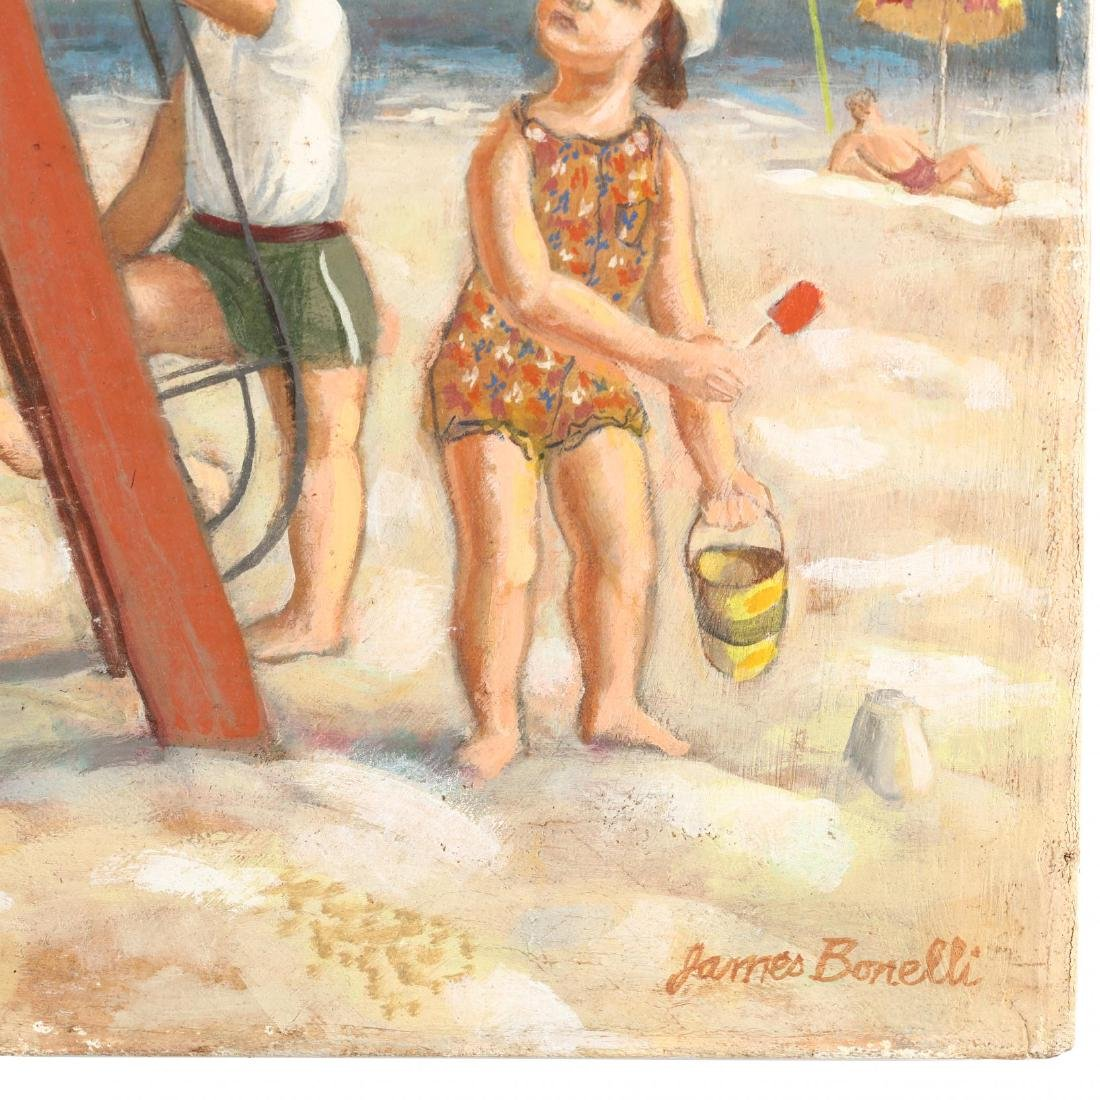 James Bonelli (PA, 1916-2000),  Beach Playground - 2